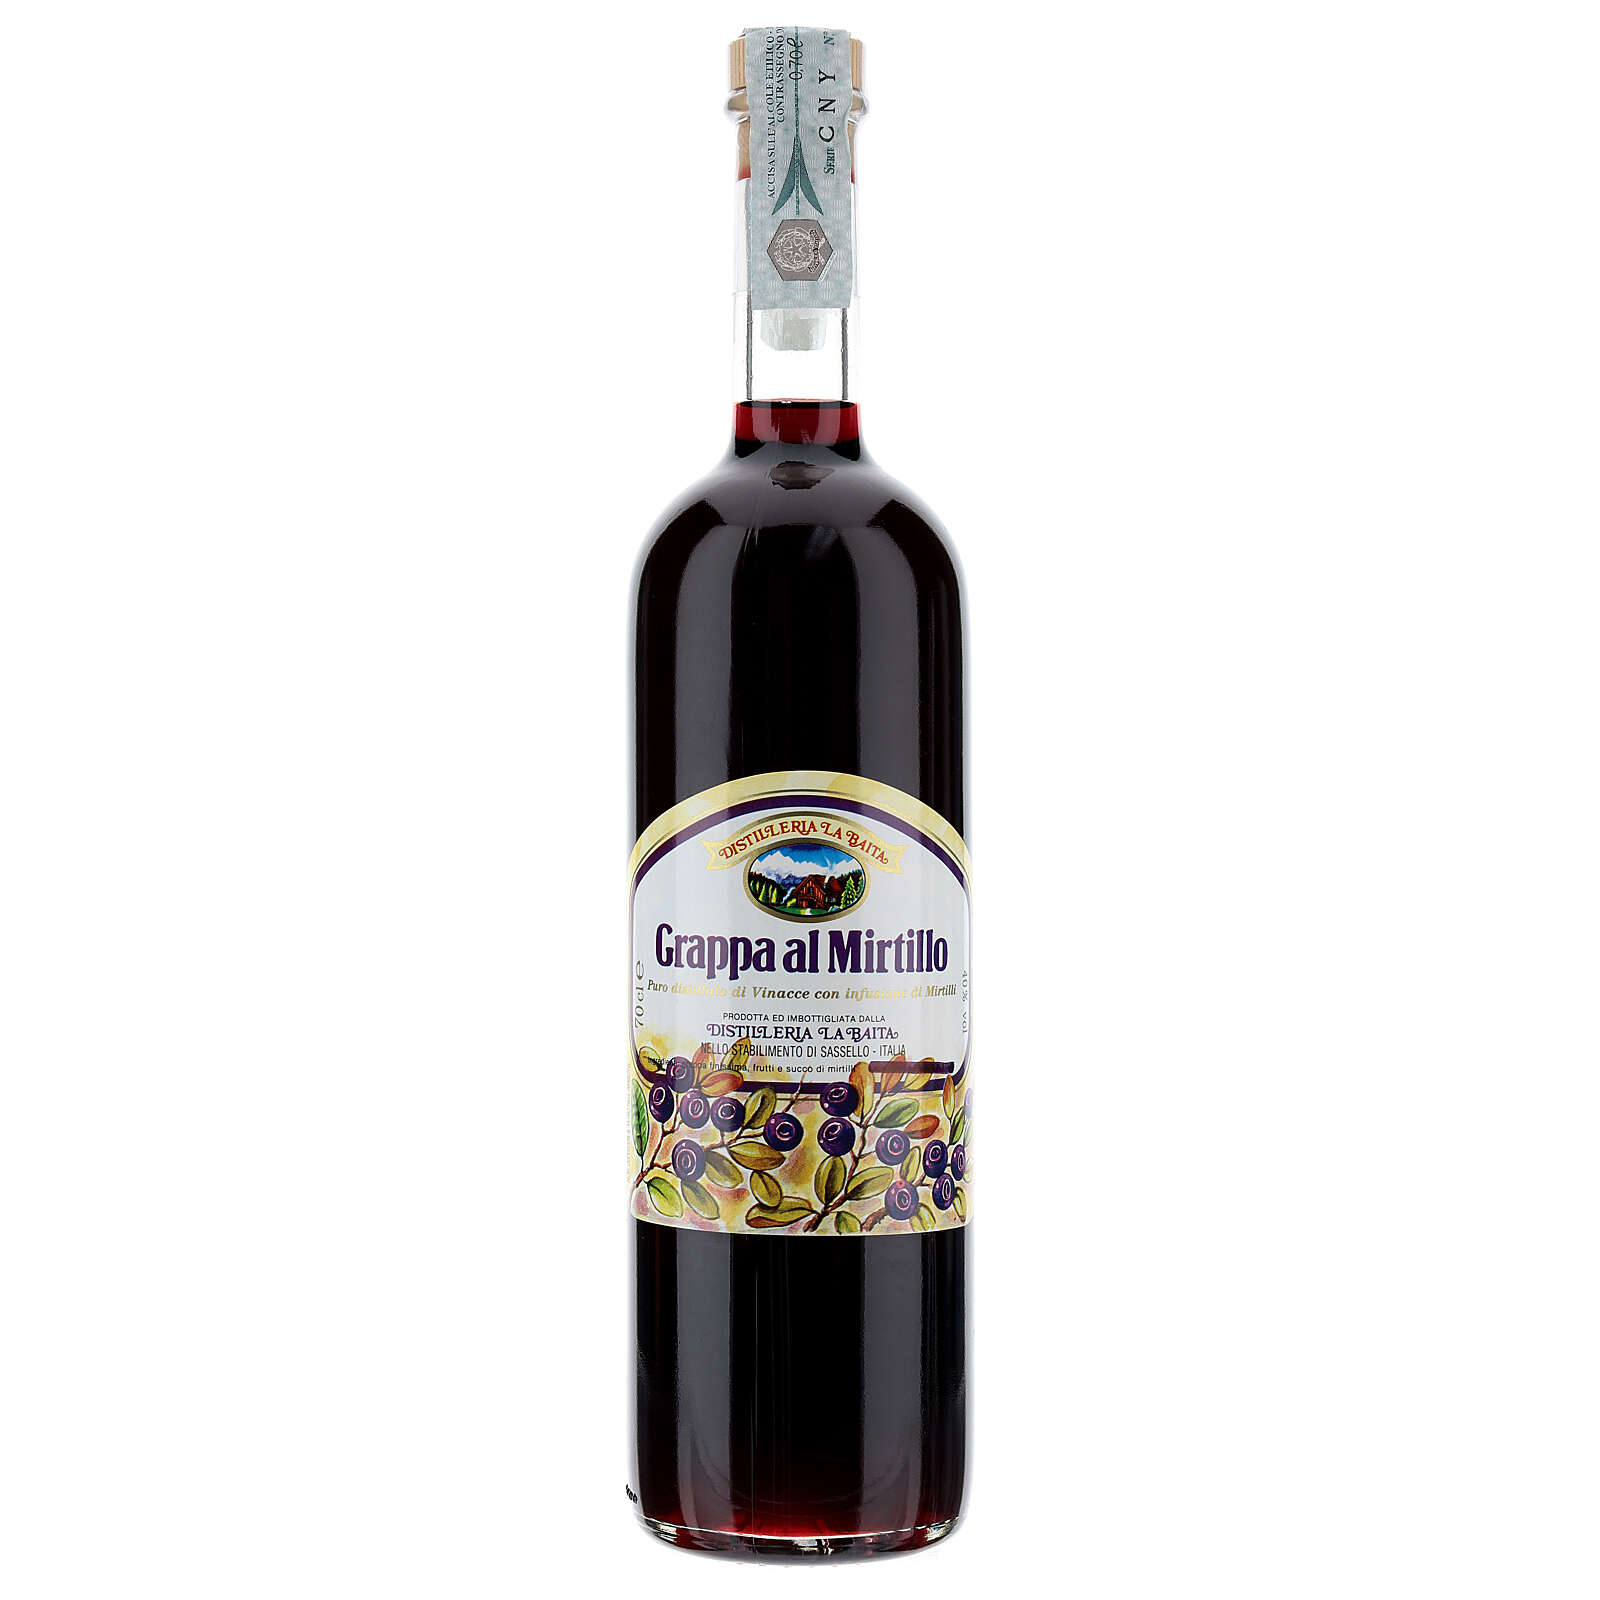 Grappa de Mirtilo 700 ml 3